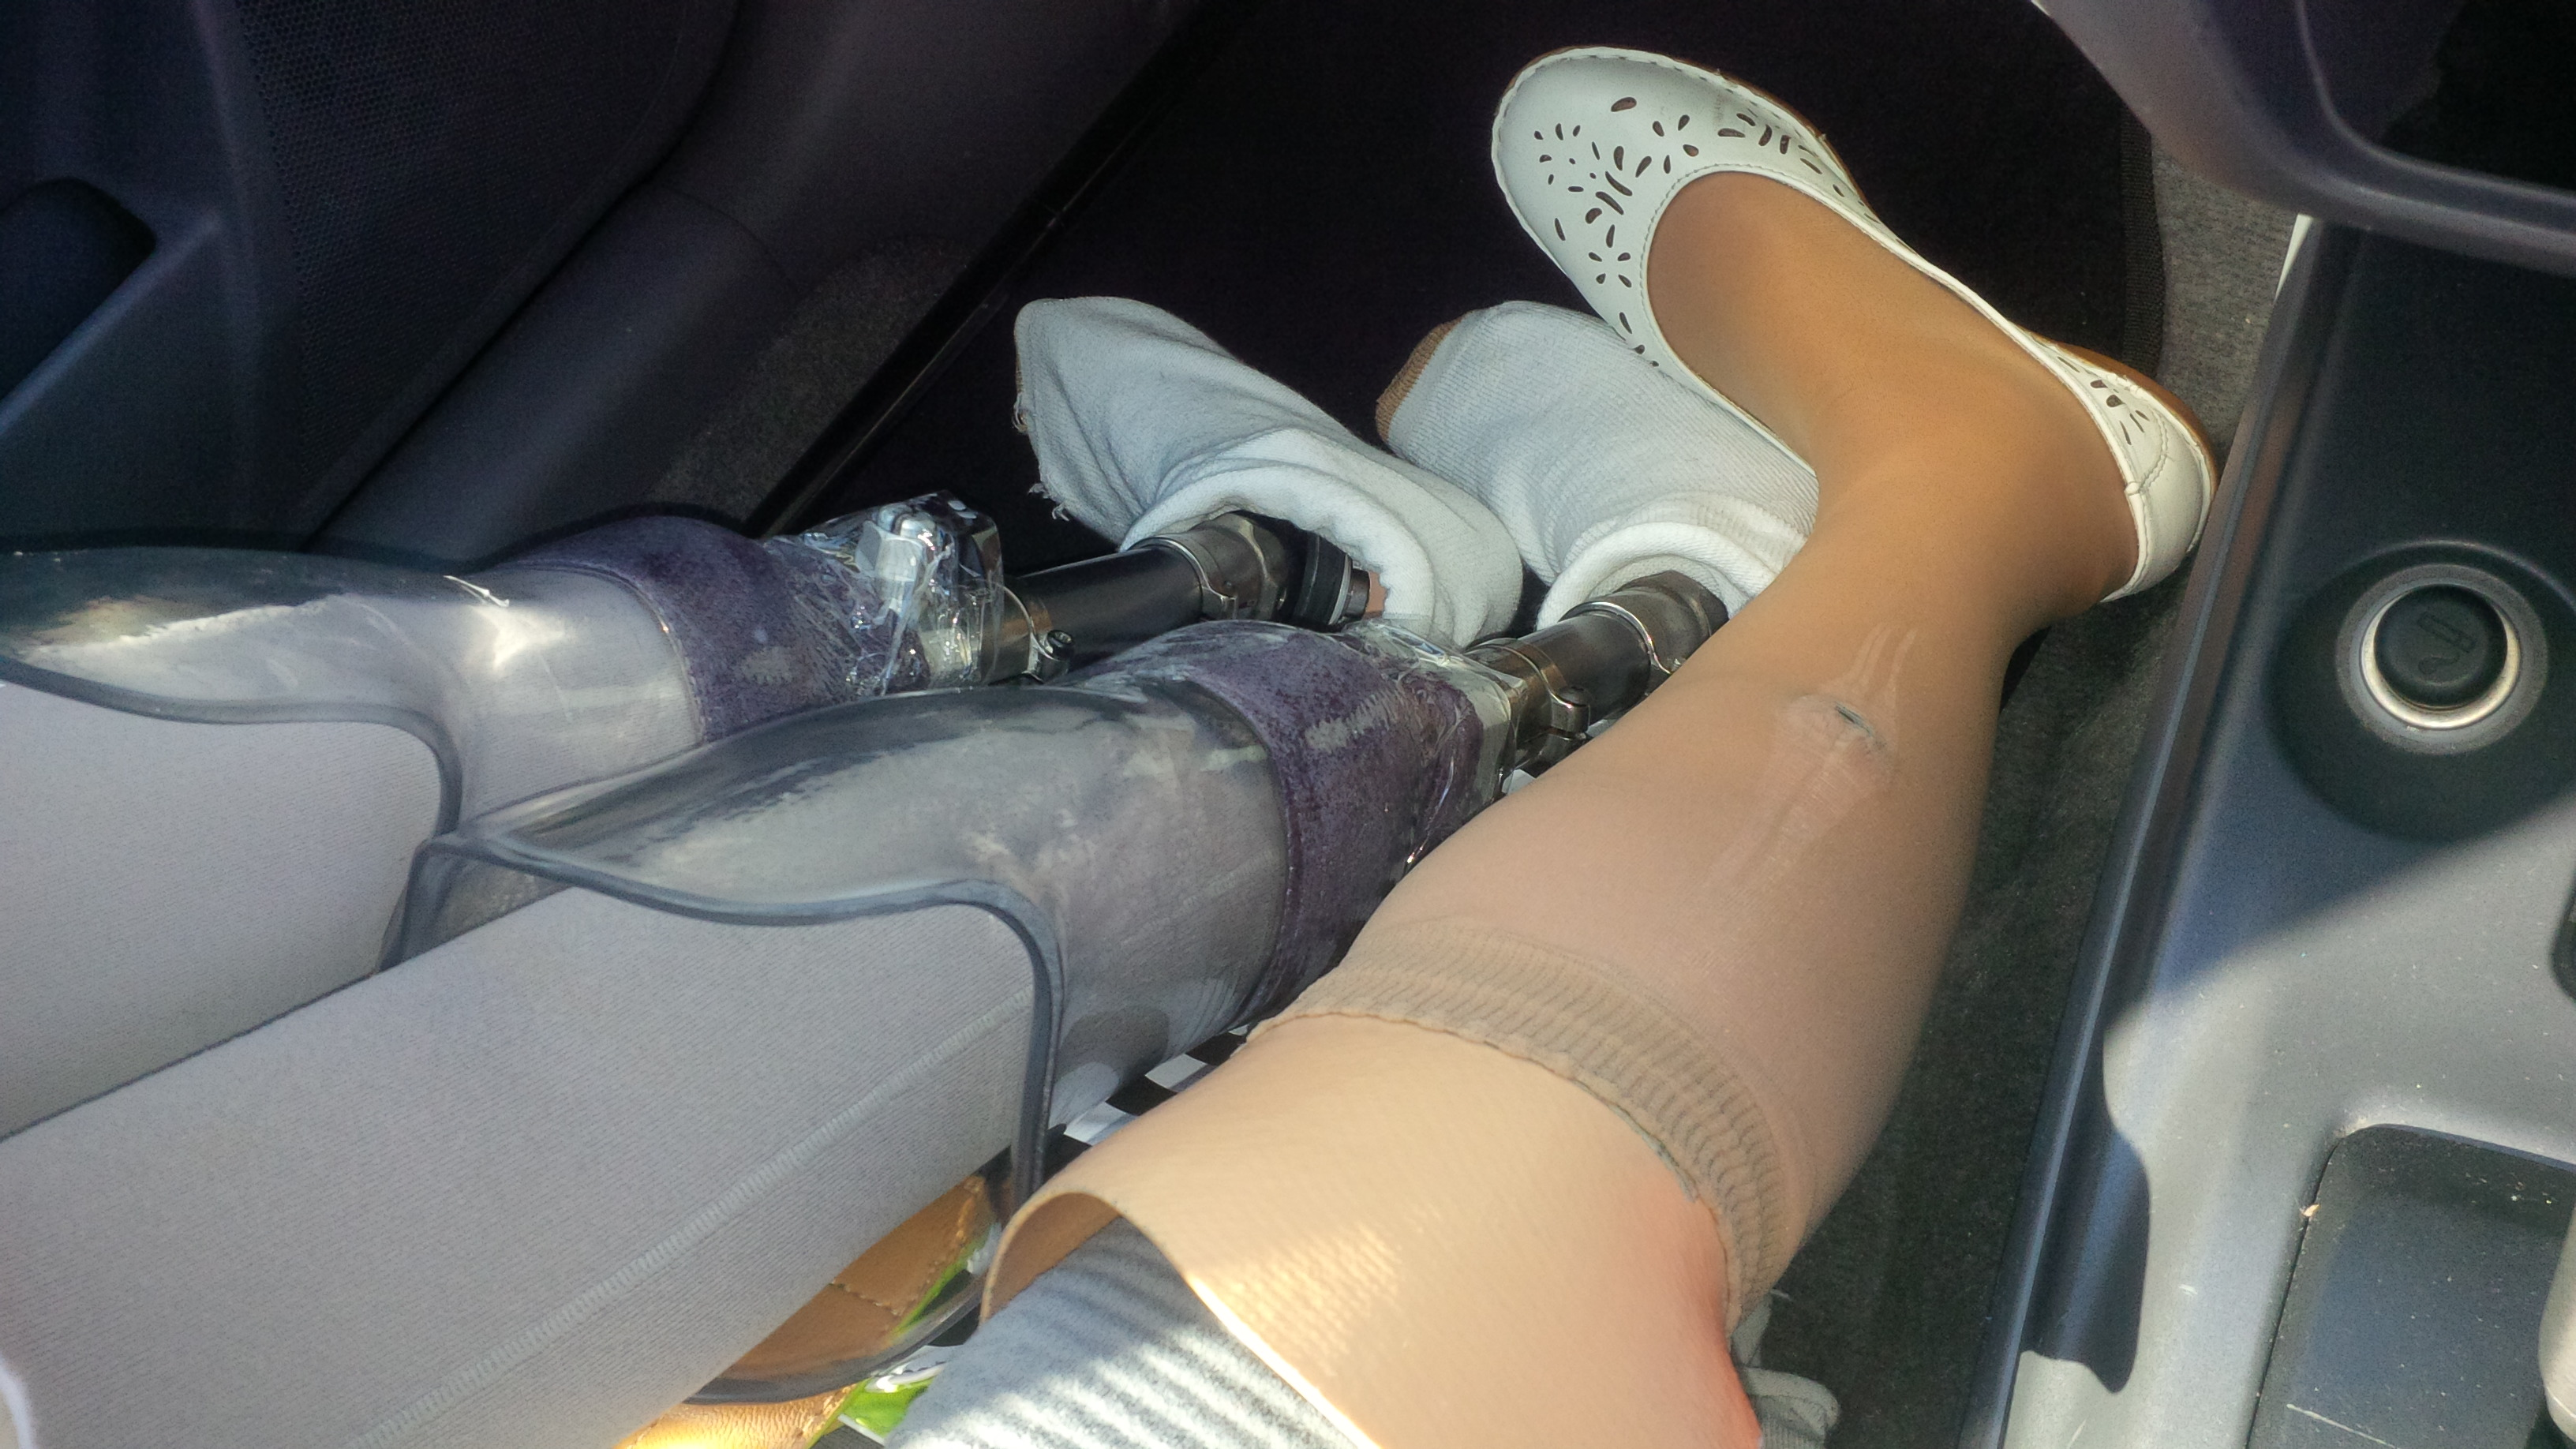 3 Prostheses in a car